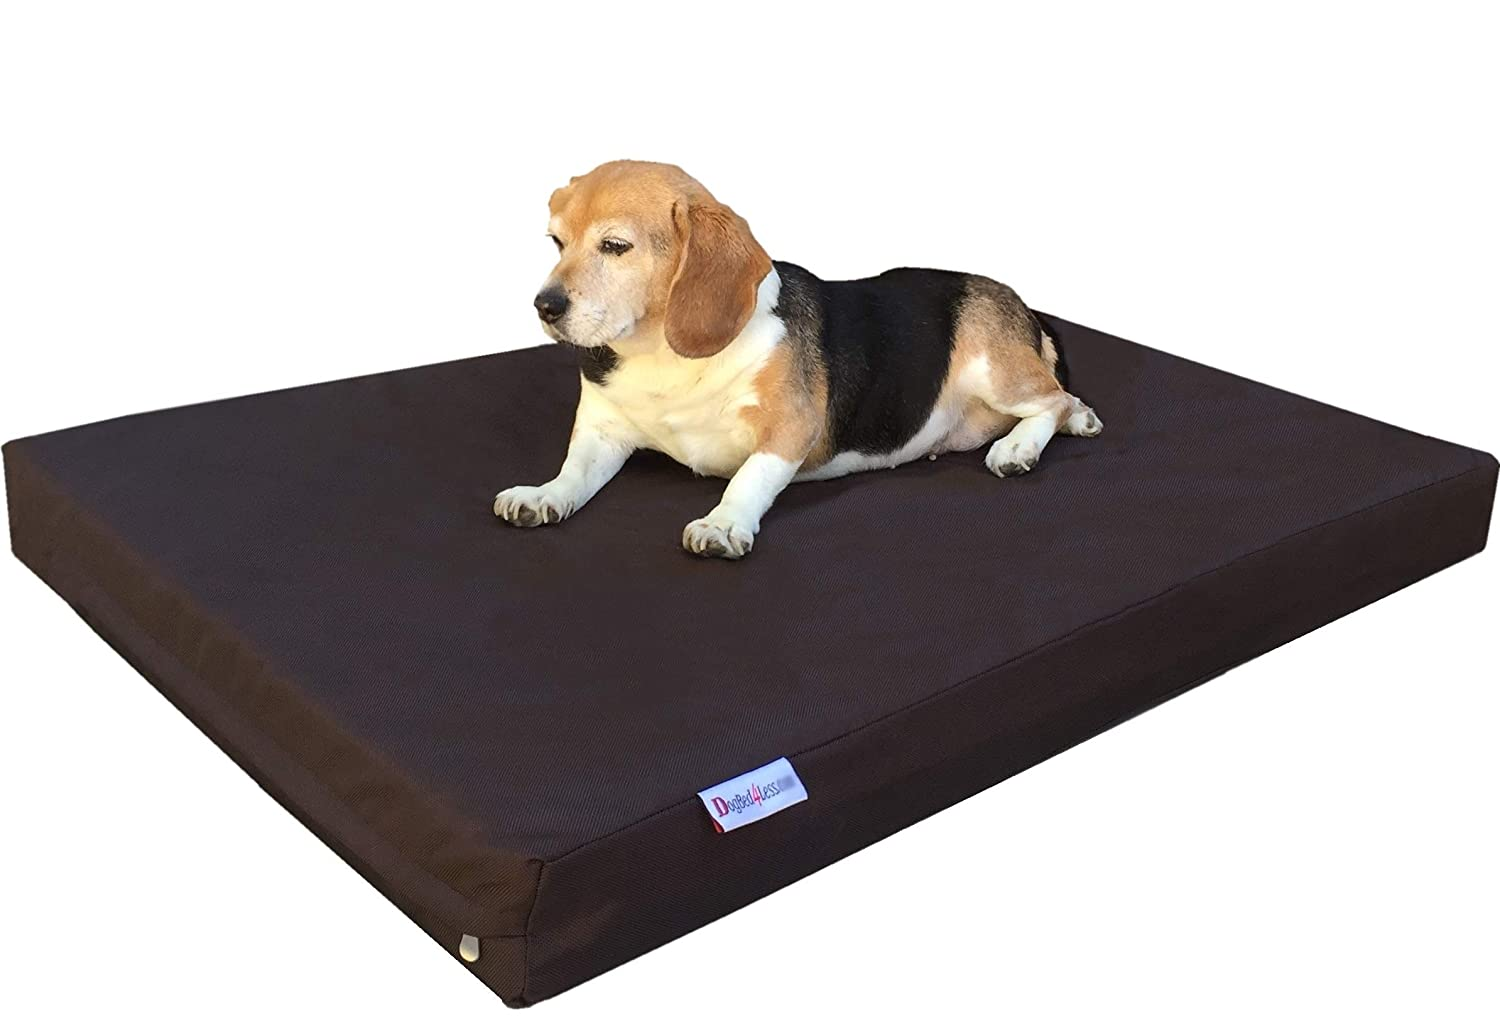 Seal Brown 41X27X4 Inch Large Seal Brown 41X27X4 Inch Large Dogbed4less Durable Large Gel Memory Foam Dog Bed with 1680 Nylon Brown Cover and Waterproof Liner with Bonus Cover, 41X27X4 Inch (Fit 42X28 Crate)